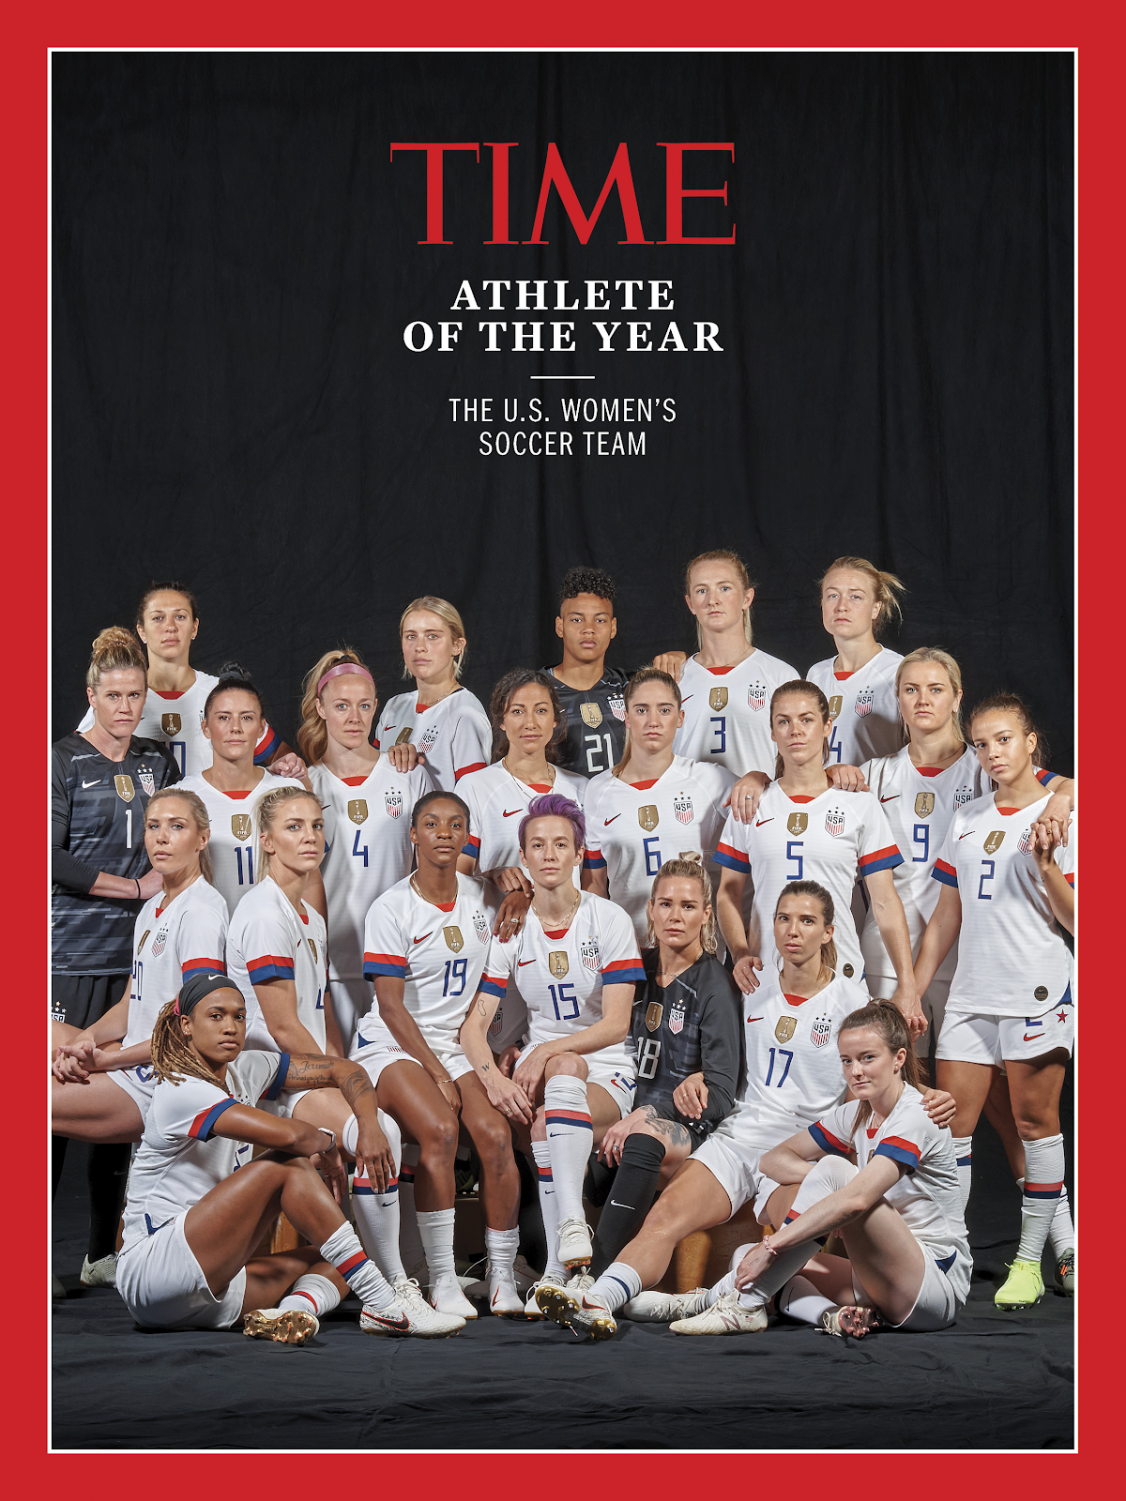 https://time.com/athlete-of-the-year-2019-us-womens-soccer-team/